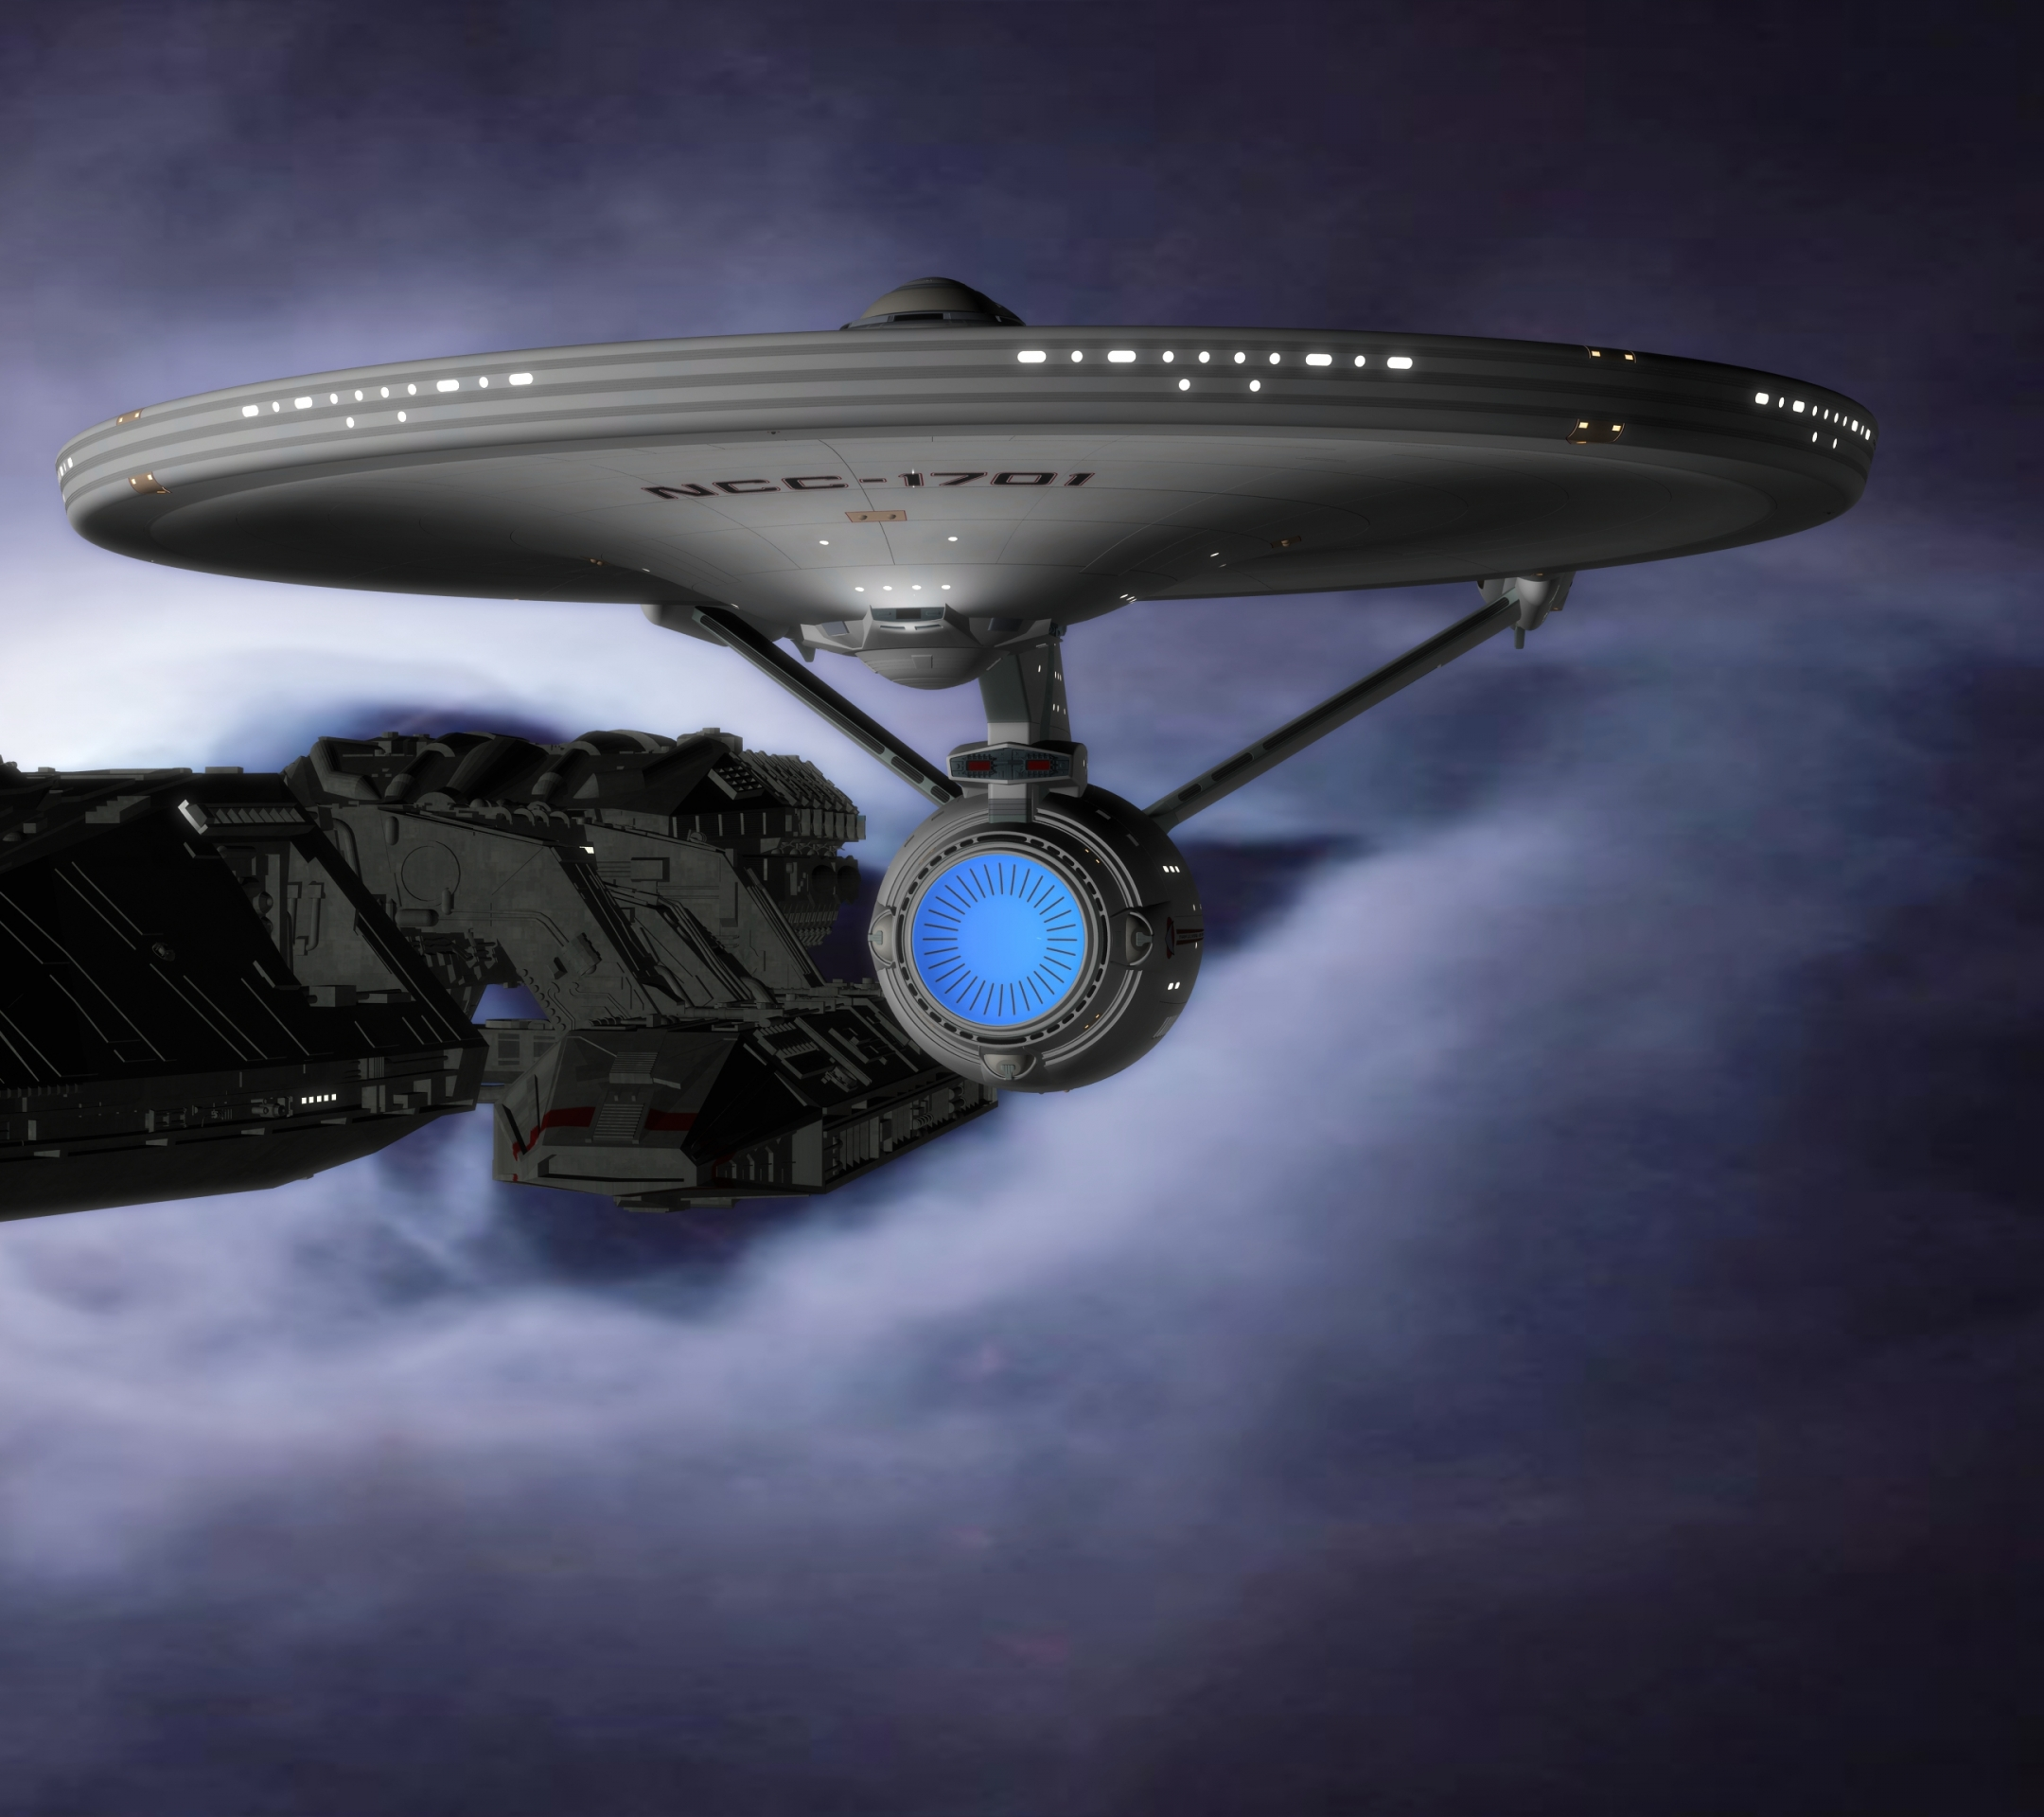 Sci Fi Star Trek 2160x1920 Wallpaper Id 585731 Mobile Abyss